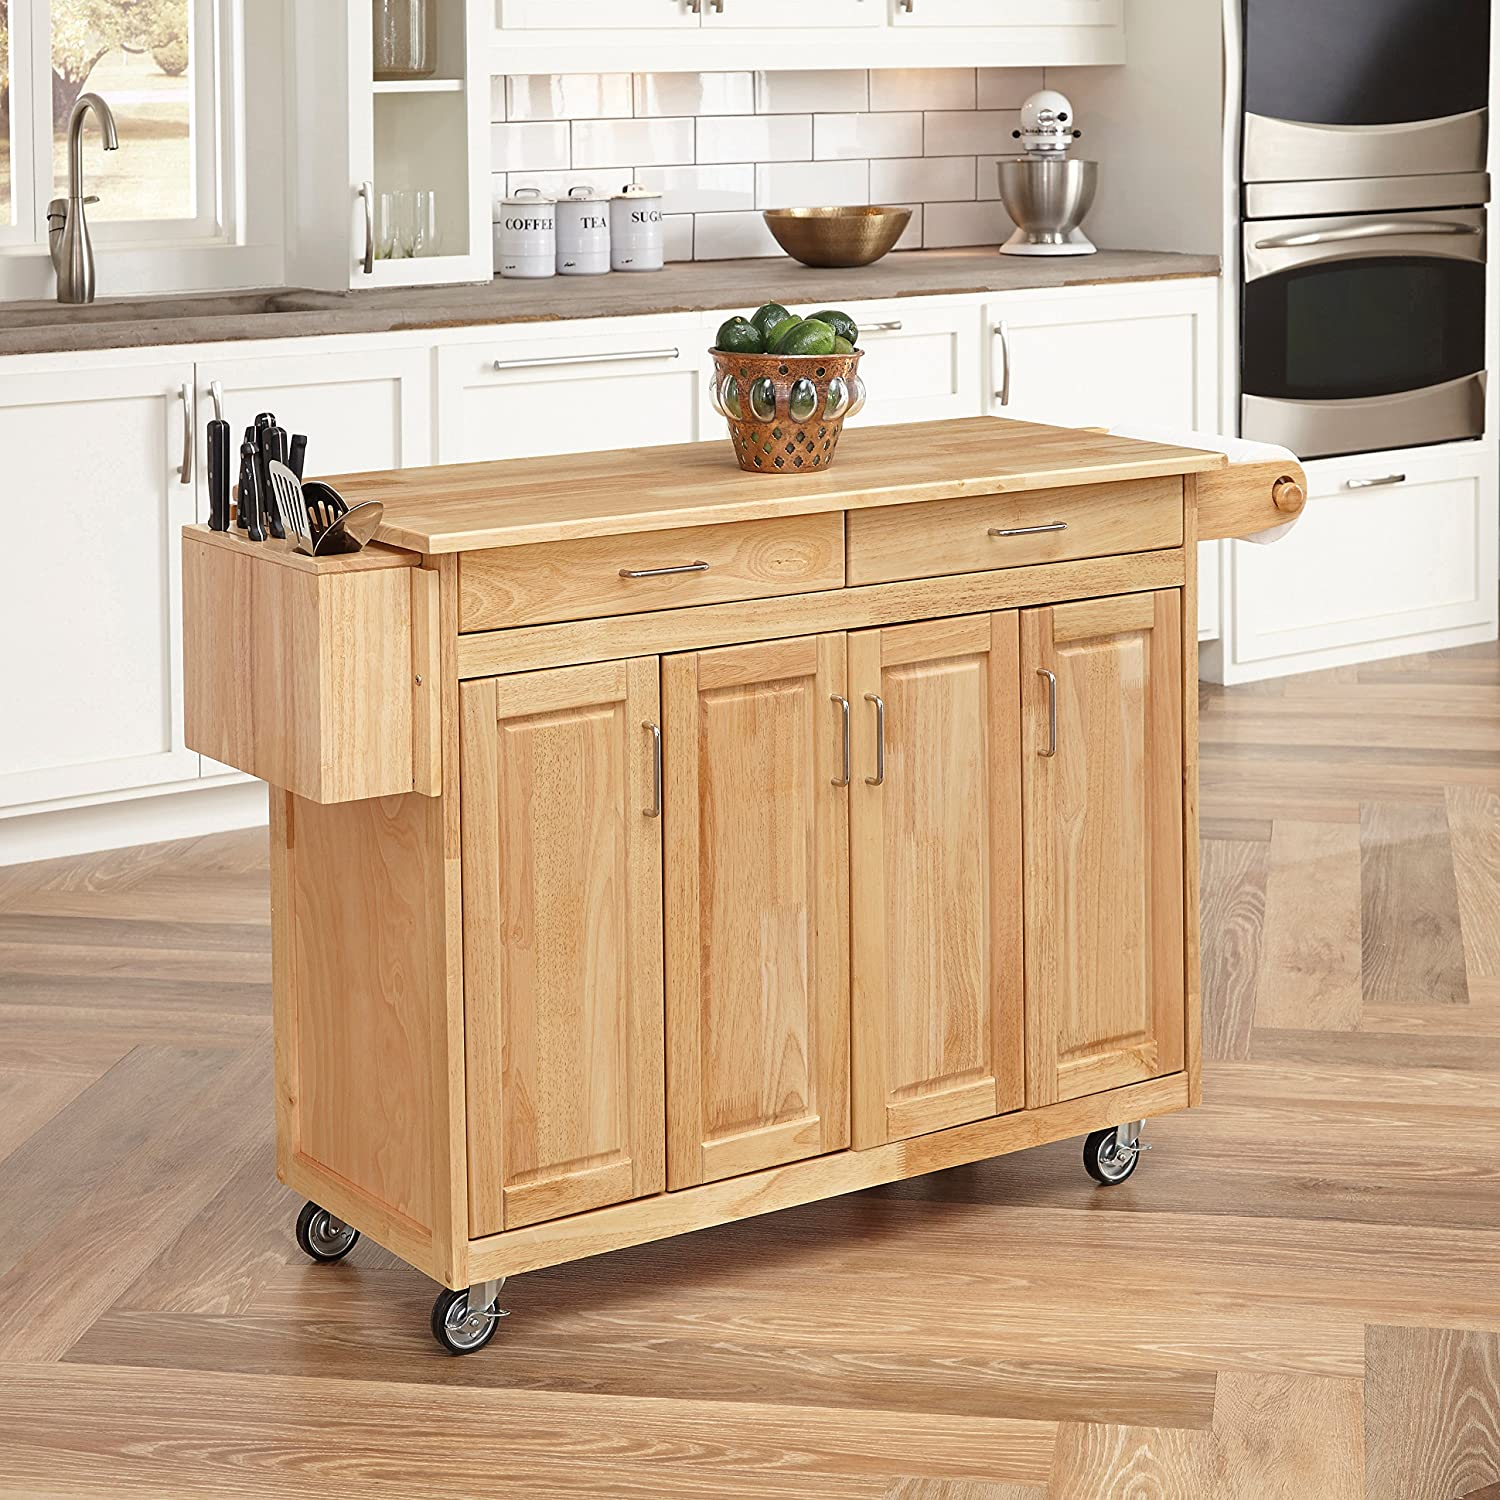 Home Styles 5023-95 Wood Top Kitchen Cart with Breakfast Bar, Natural Finish